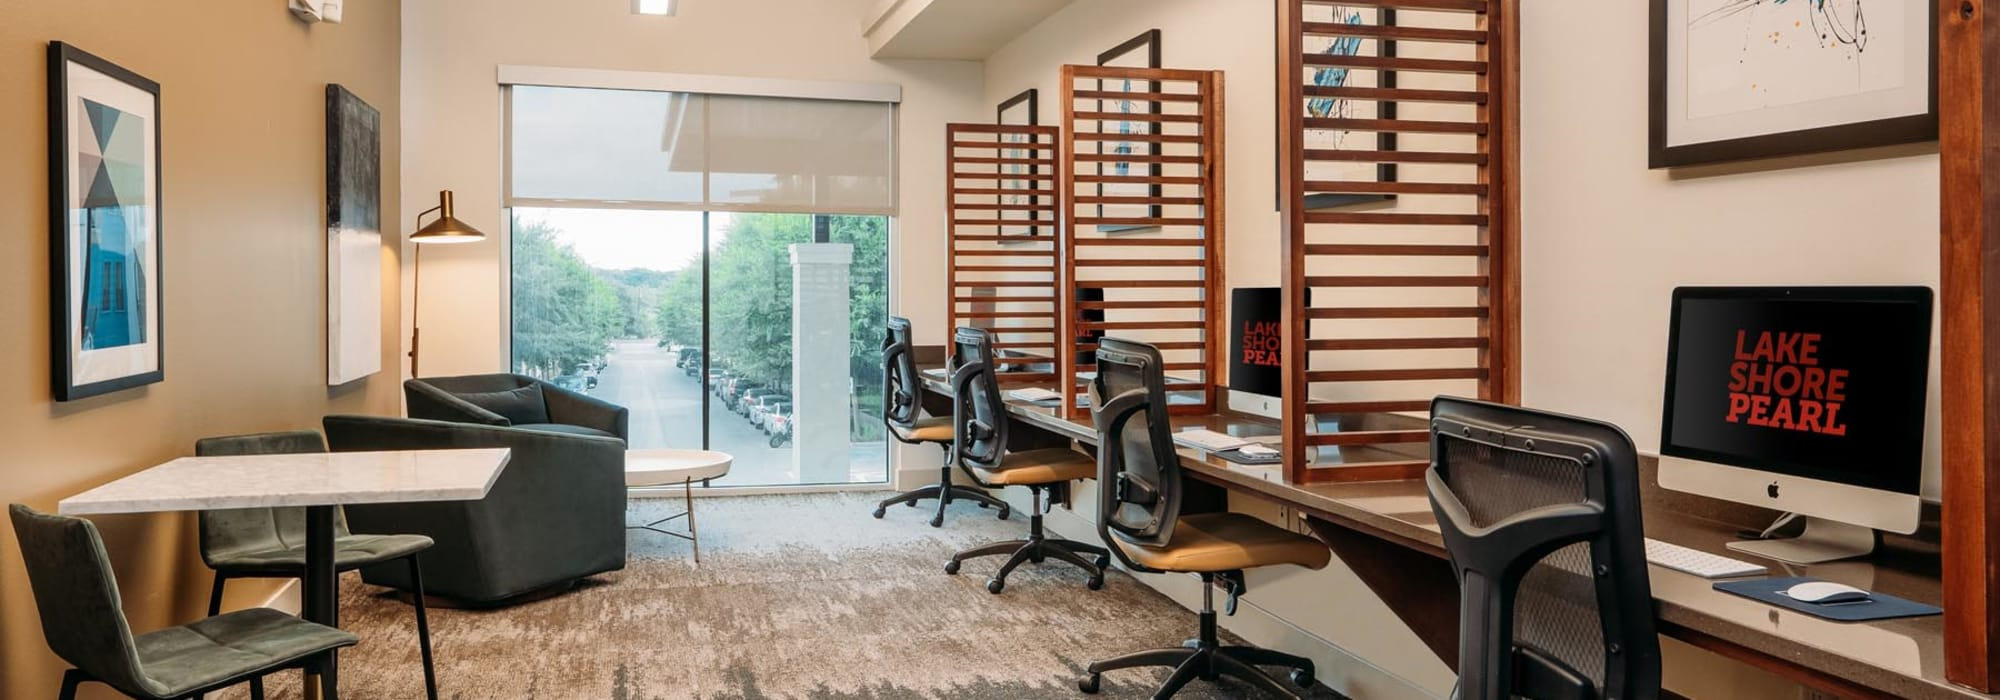 Business center with workstations for resident use at Lakeshore Pearl in Austin, Texas